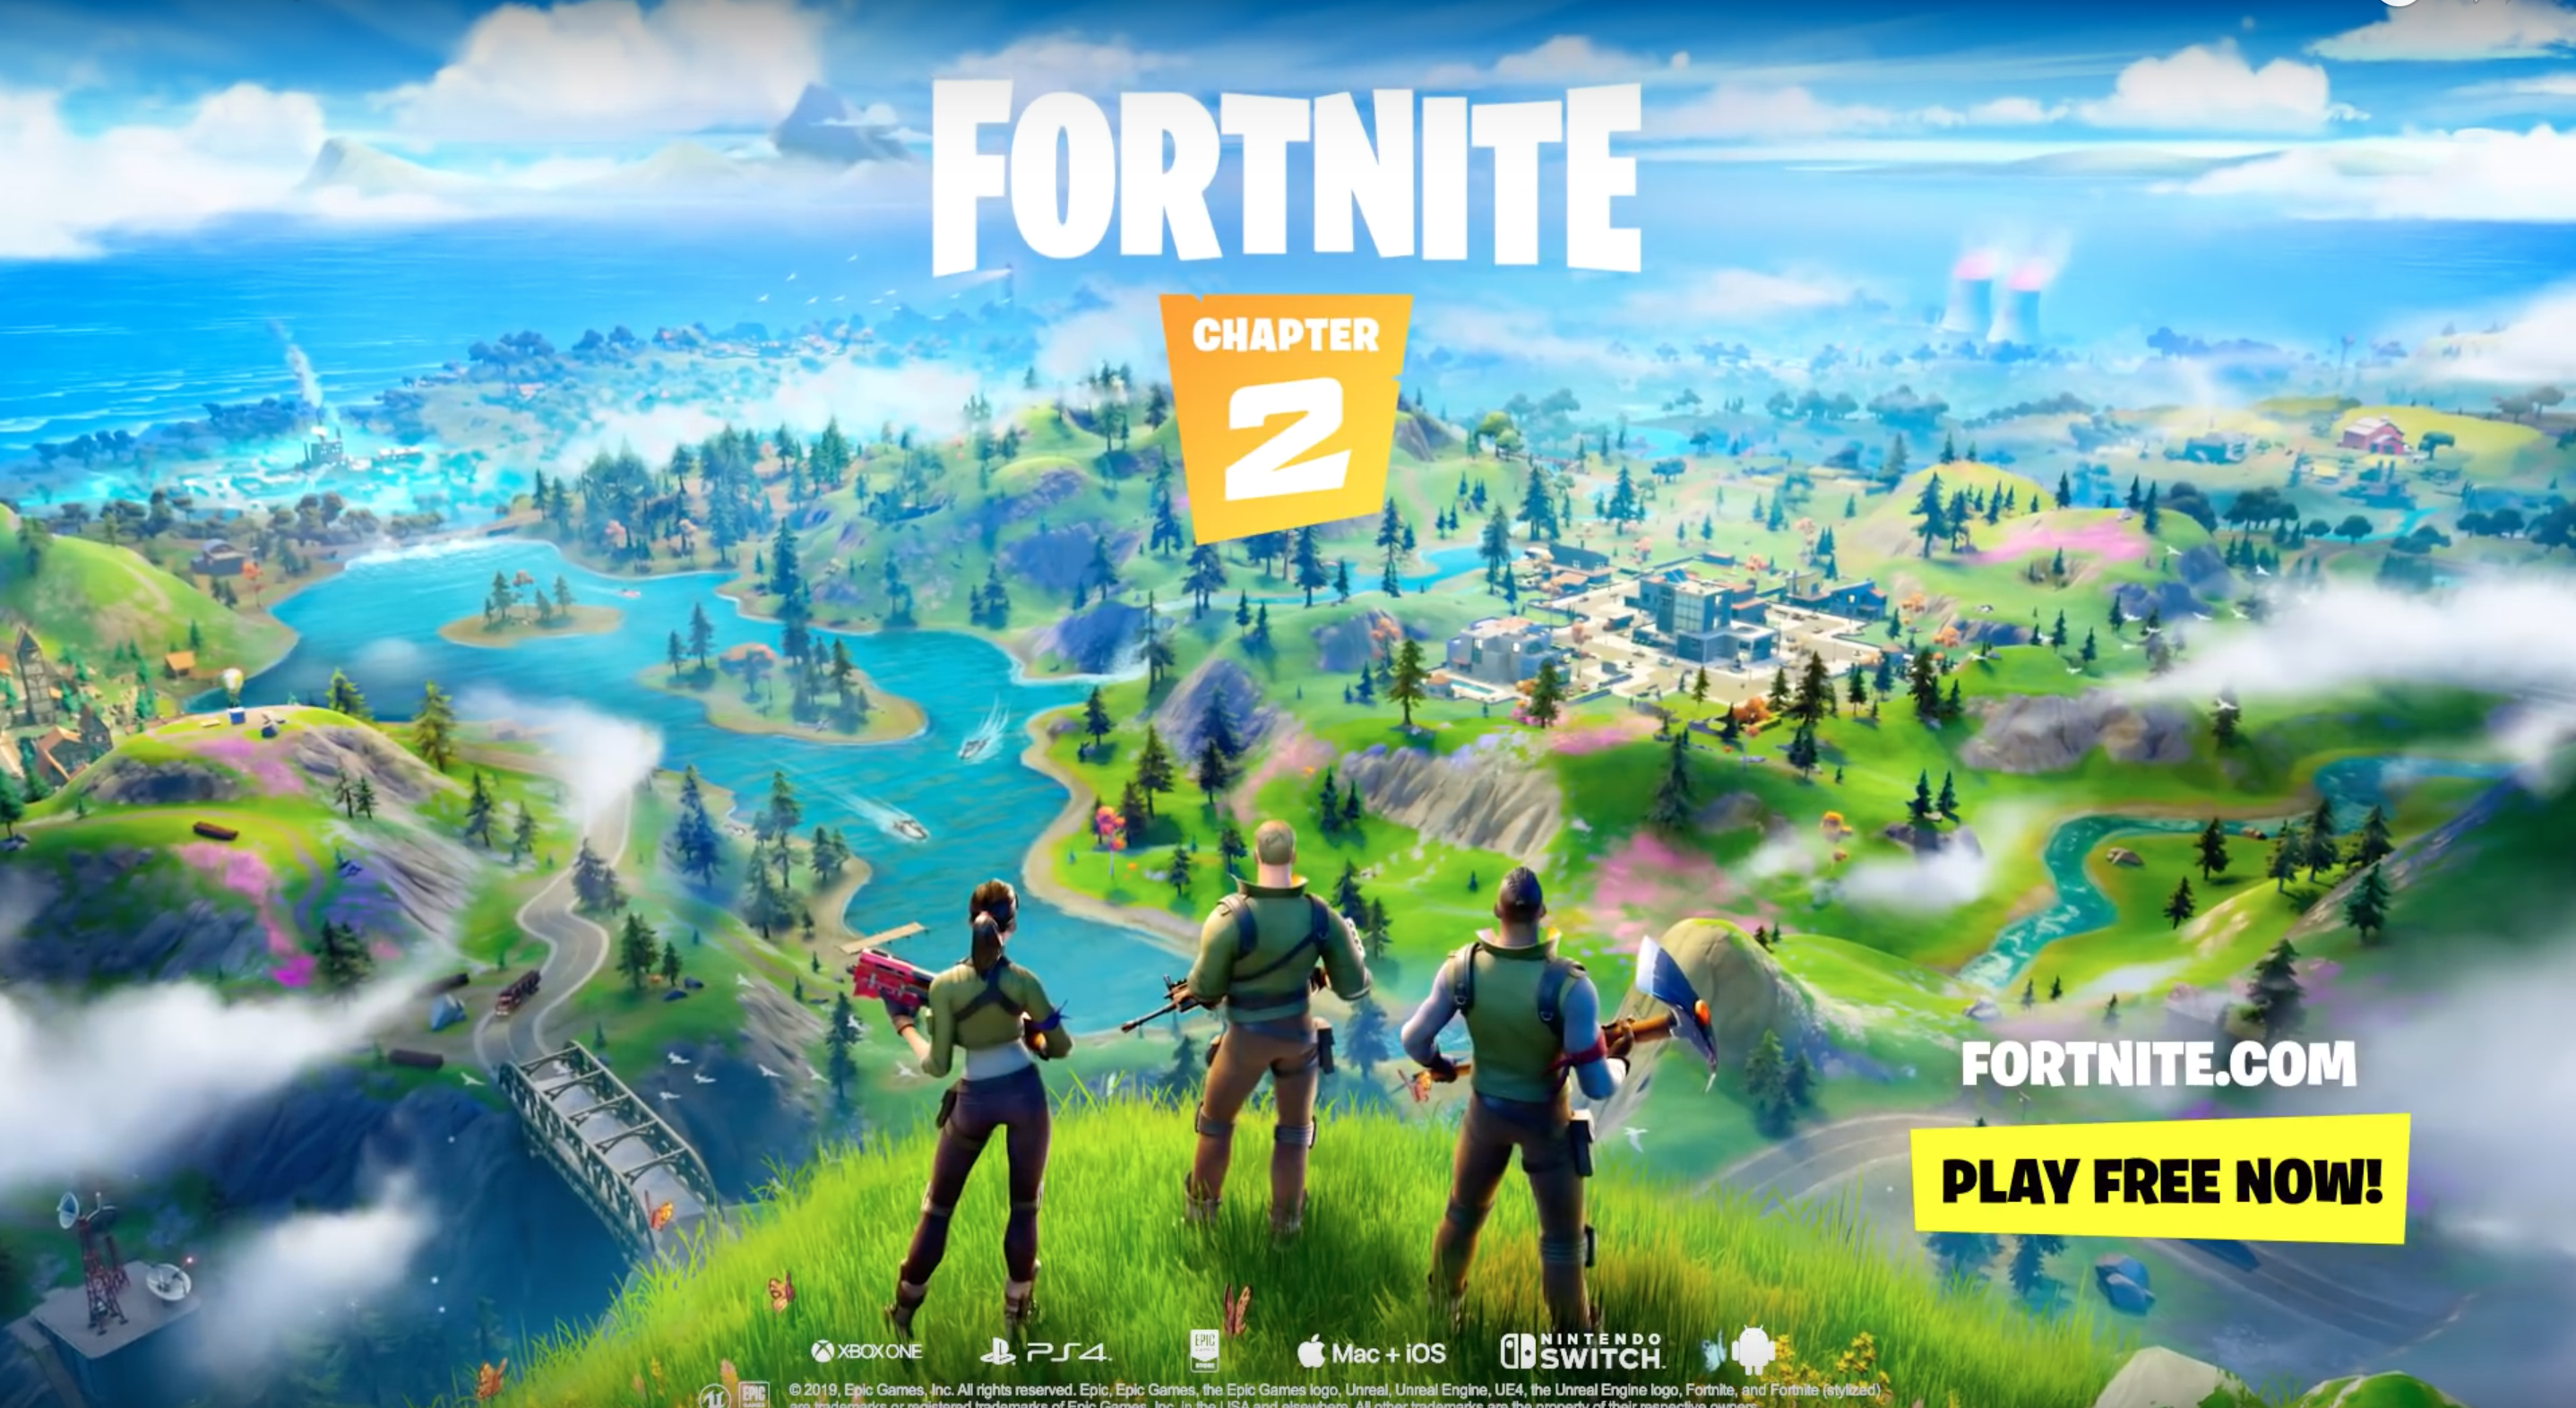 Fortnite Chapter 2 trailer leak shows off new map, boats, fishing, and more